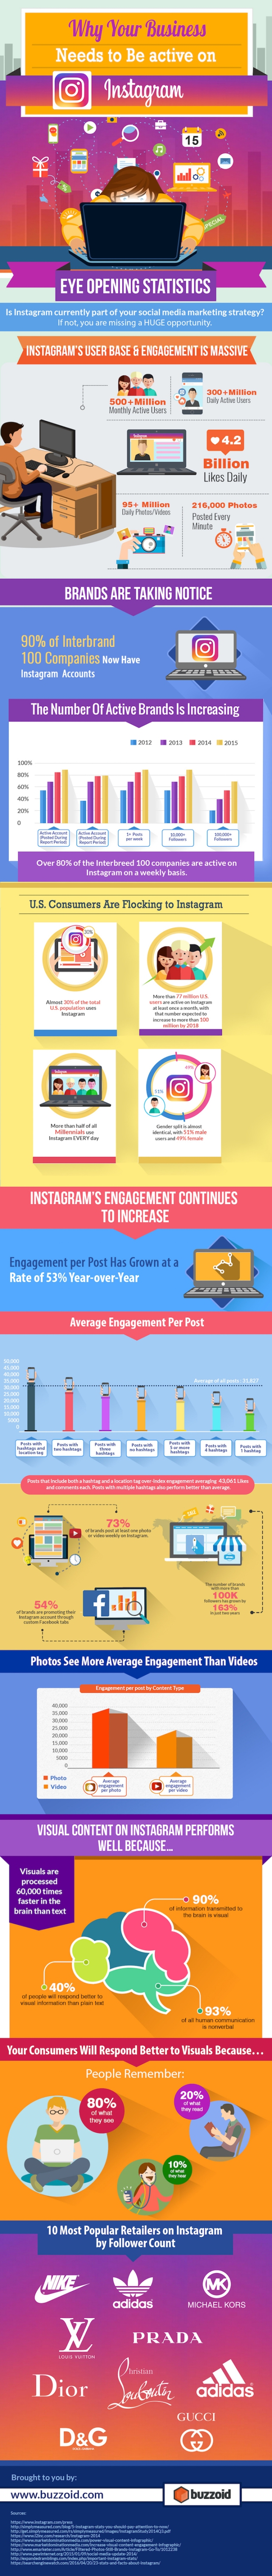 Why Instagram Needs to Be Part of Your Marketing Strategy (Infographic).jpg